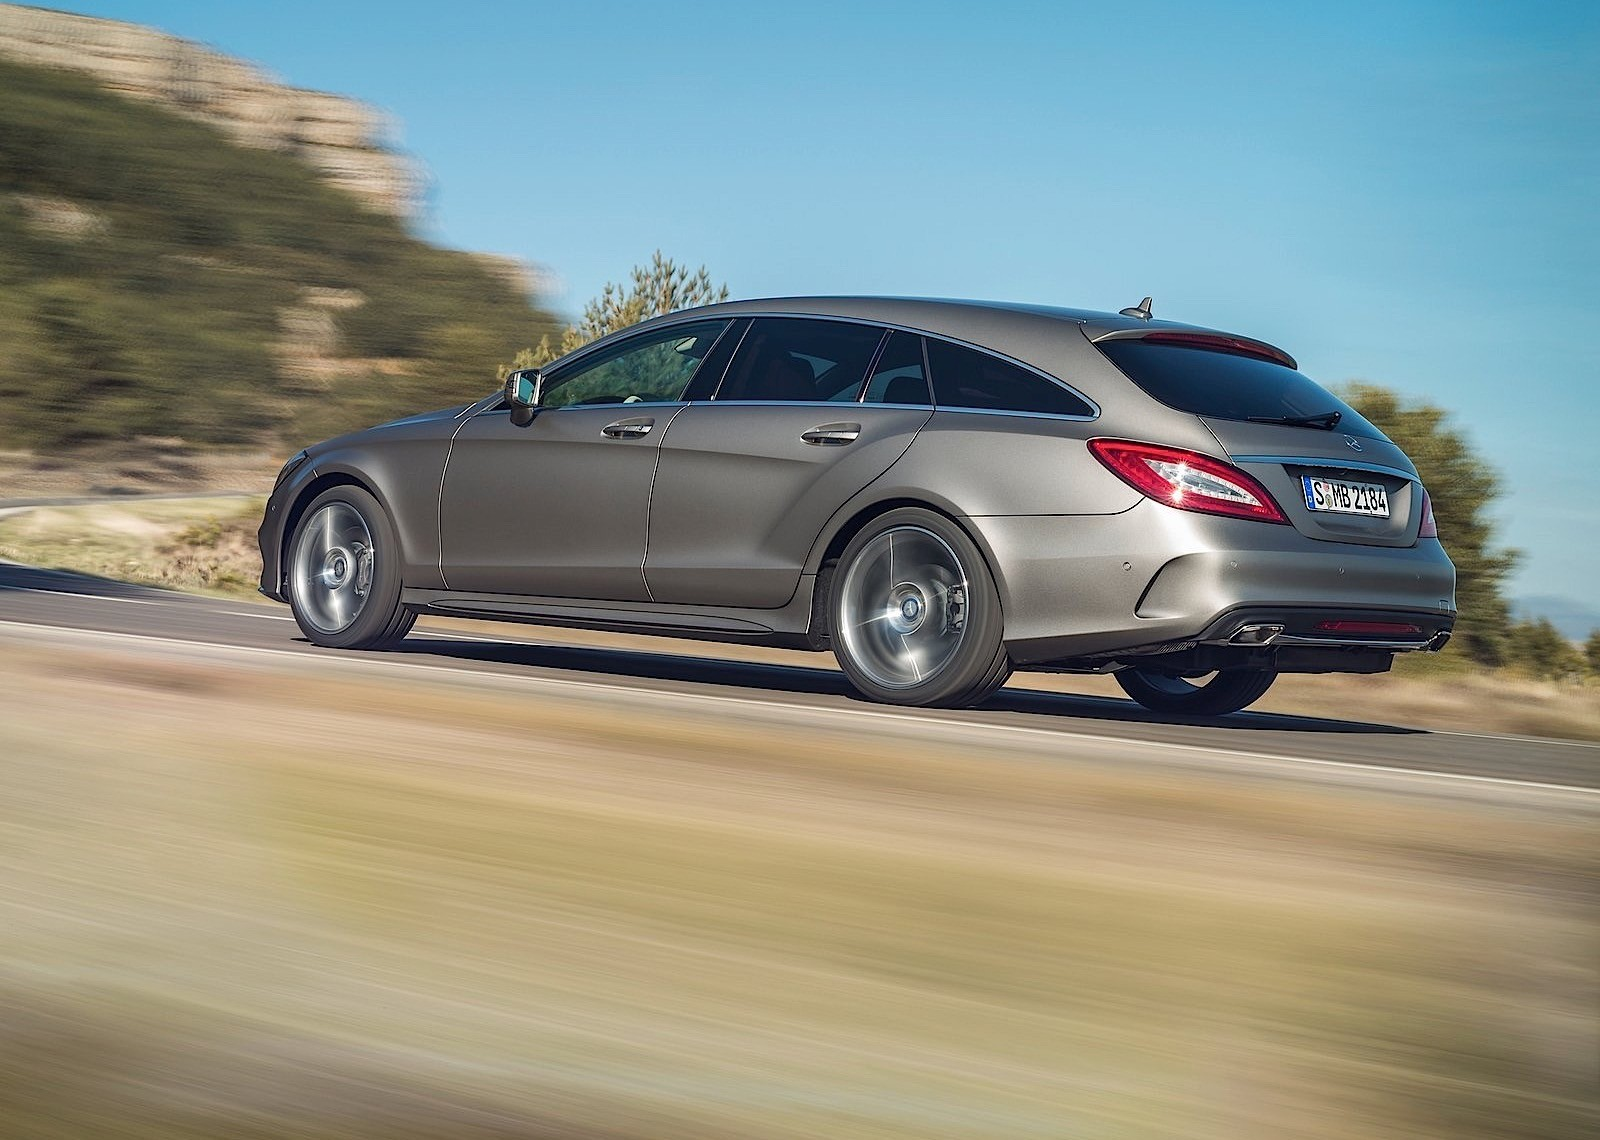 mercedes benz cls shooting brake x218 specs 2014 2015 2016 2017 autoevolution. Black Bedroom Furniture Sets. Home Design Ideas